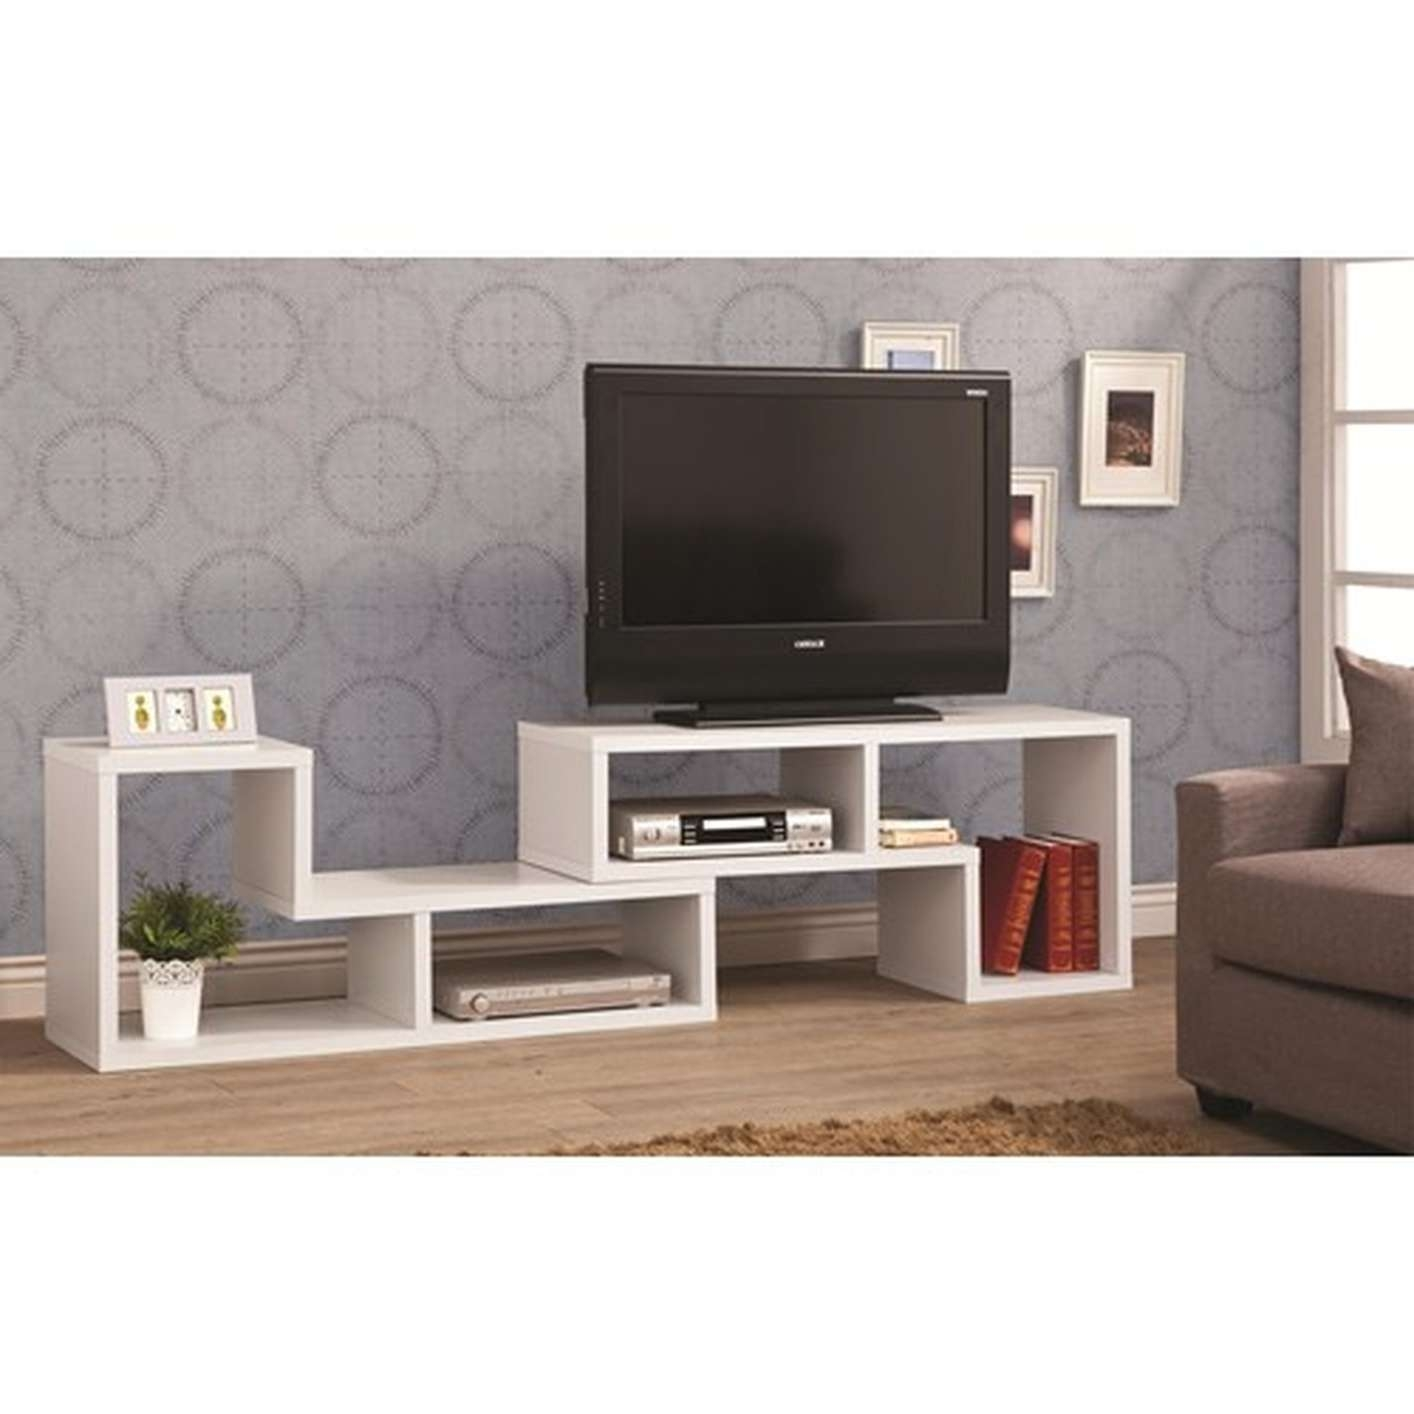 White Wood Tv Stand – Steal A Sofa Furniture Outlet Los Angeles Ca For Wood Tv Stands (View 14 of 15)